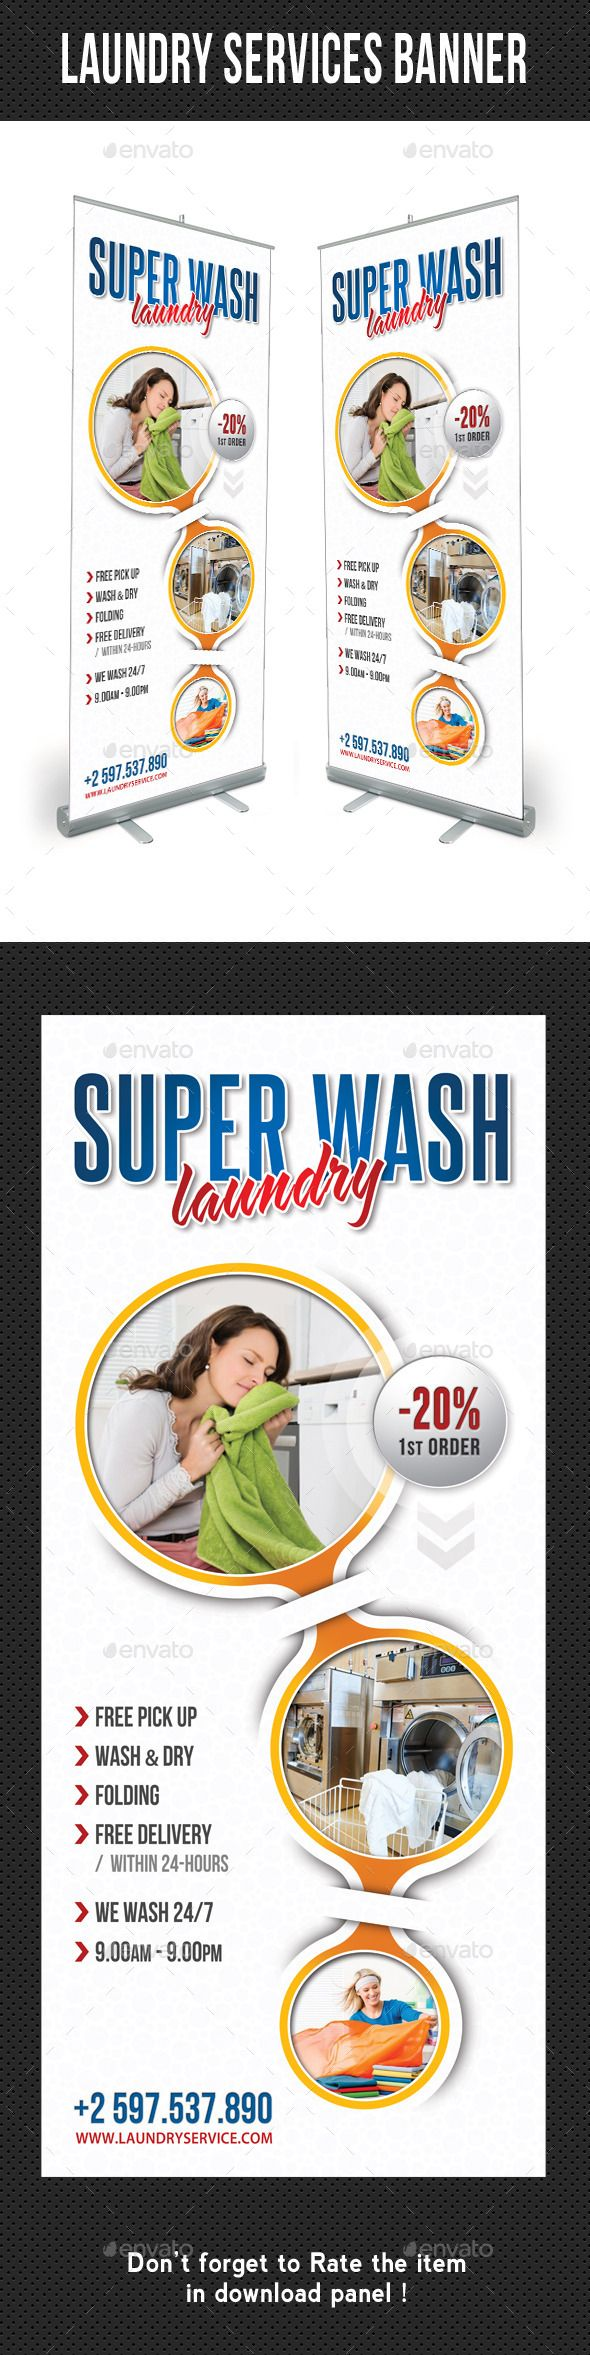 Laundry Services Banner Template V02